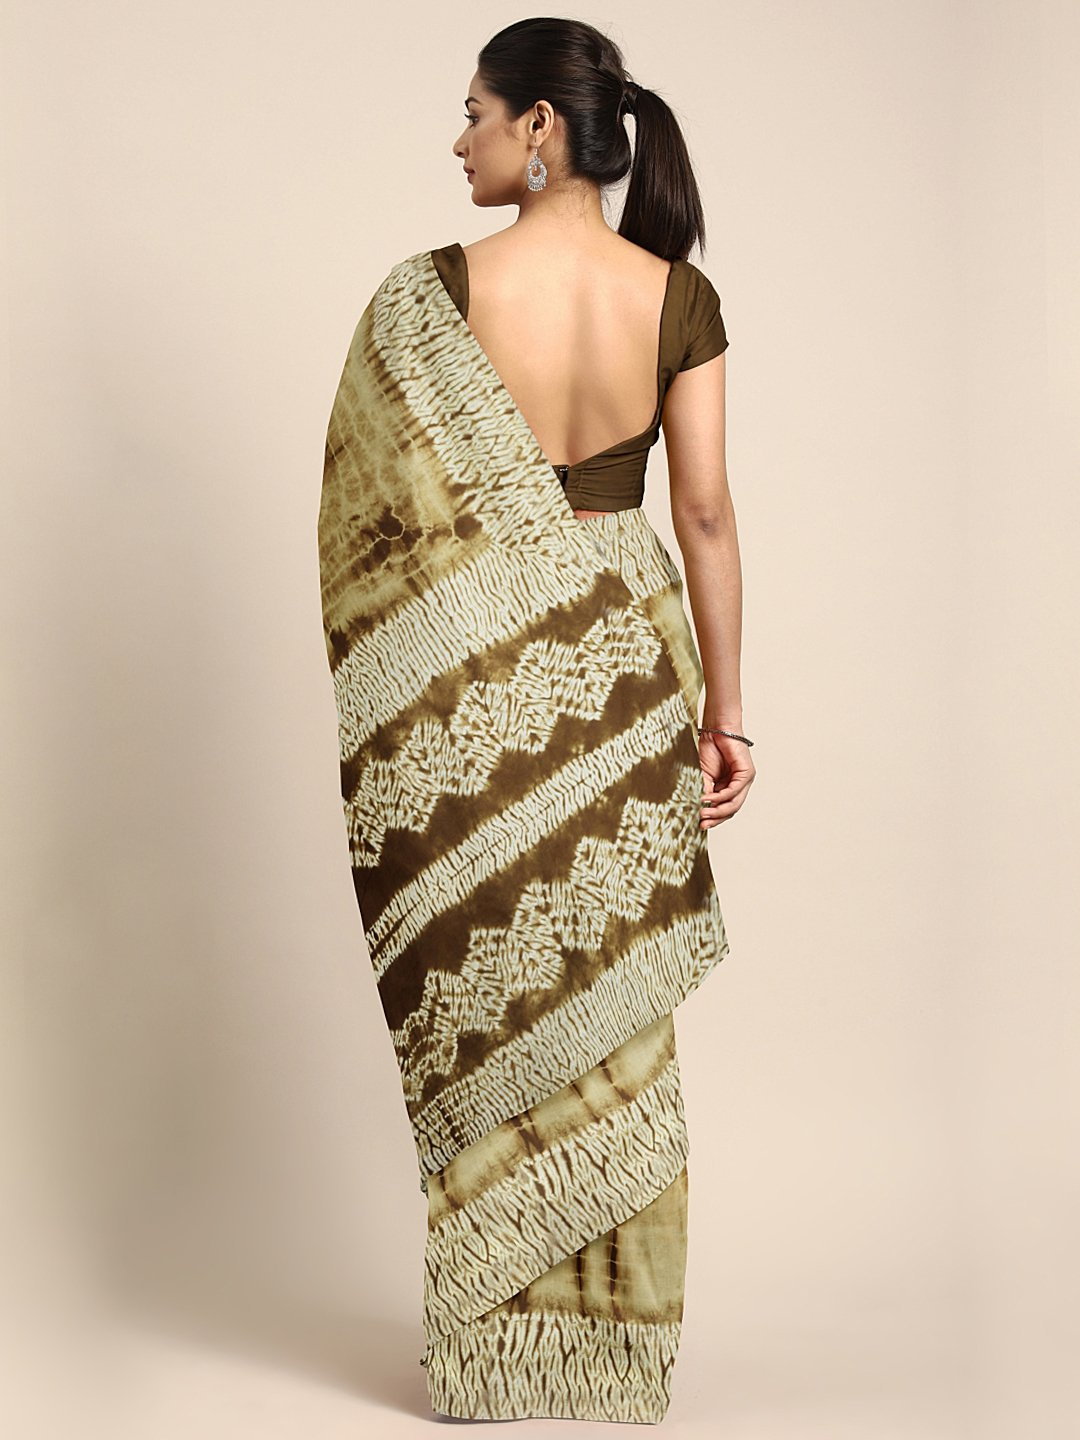 Beige & Brown Shibori Tie & Dyed Handcrafted Cotton Saree-Saree-Kalakari India-BHKPSA0044-Cotton, Geographical Indication, Hand Blocks, Hand Crafted, Heritage Prints, Sarees, Shibori, Sustainable Fabrics-[Linen,Ethnic,wear,Fashionista,Handloom,Handicraft,Indigo,blockprint,block,print,Cotton,Chanderi,Blue, latest,classy,party,bollywood,trendy,summer,style,traditional,formal,elegant,unique,style,hand,block,print, dabu,booti,gift,present,glamorous,affordable,collectible,Sari,Saree,printed, holi, Di